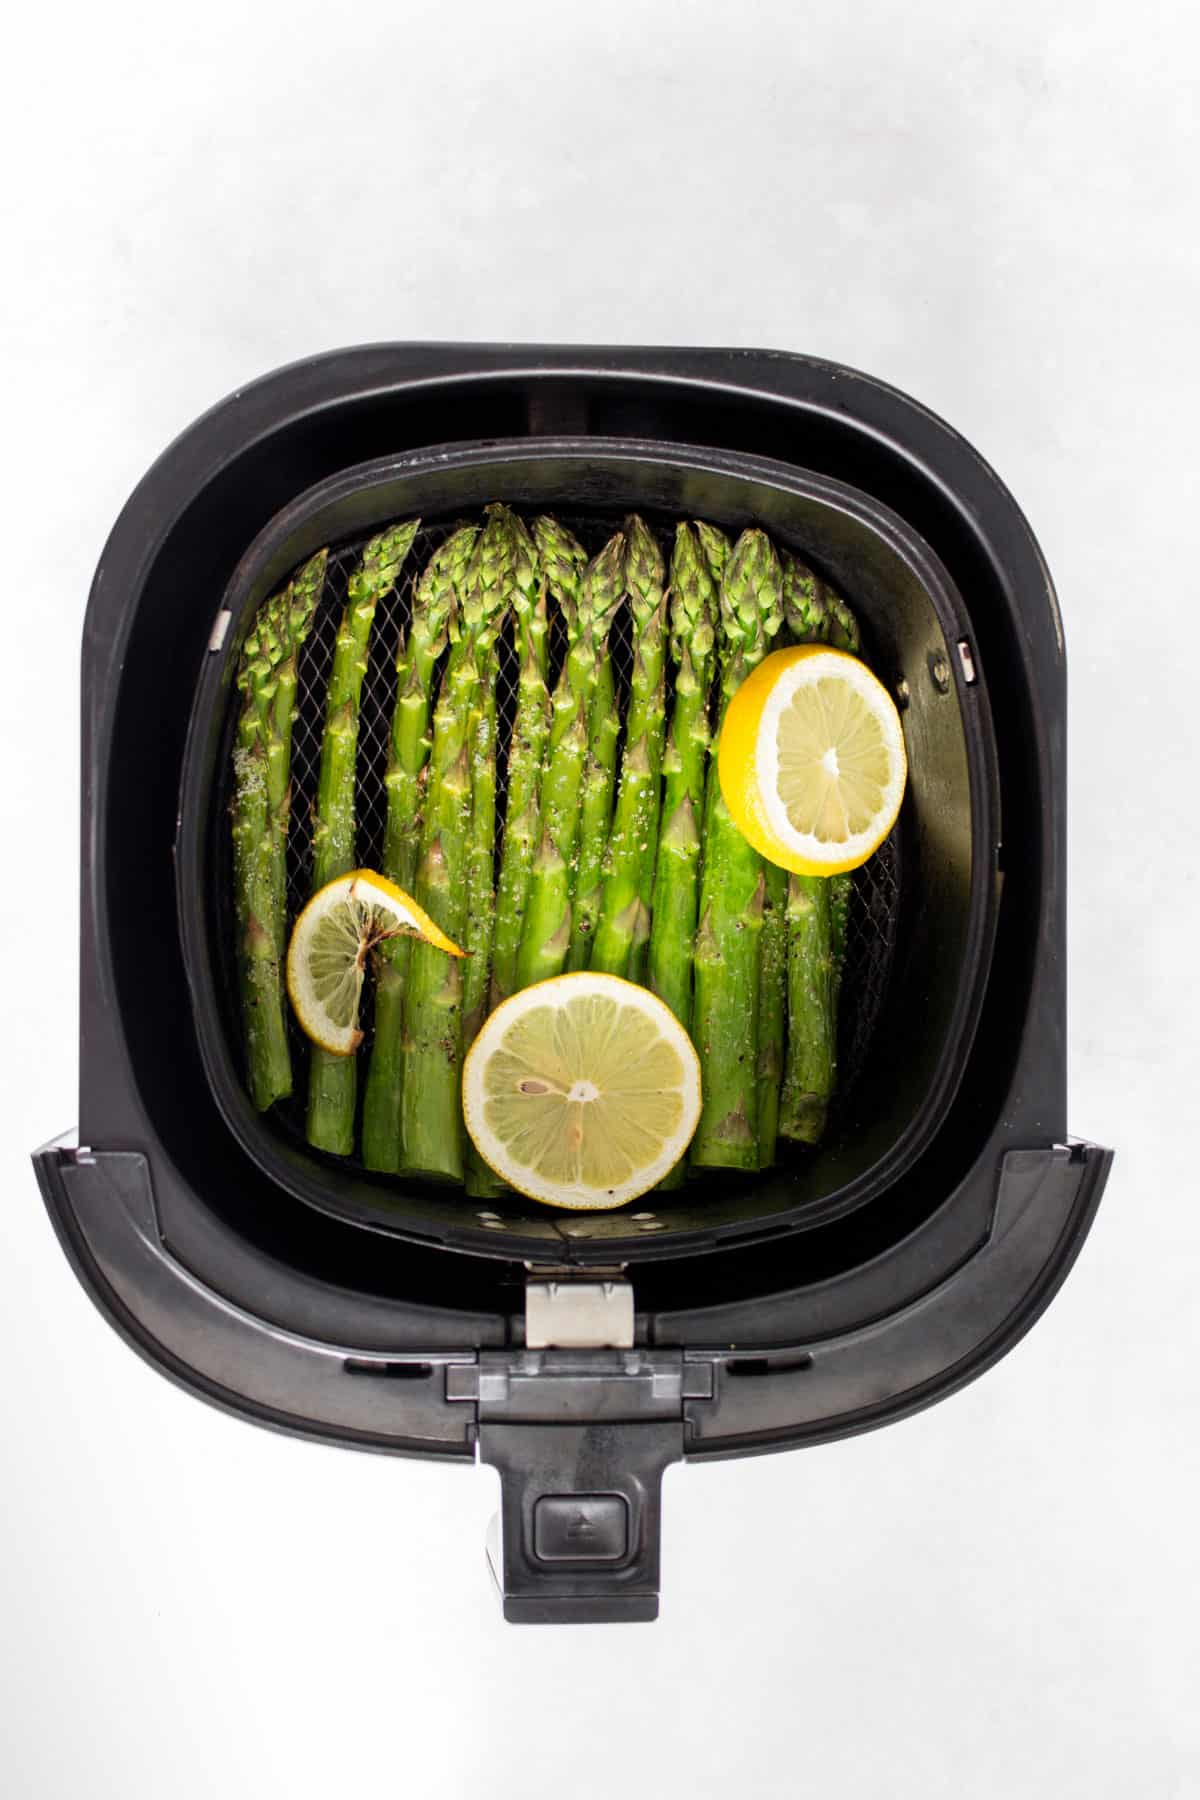 Air fried asparagus in the basket.